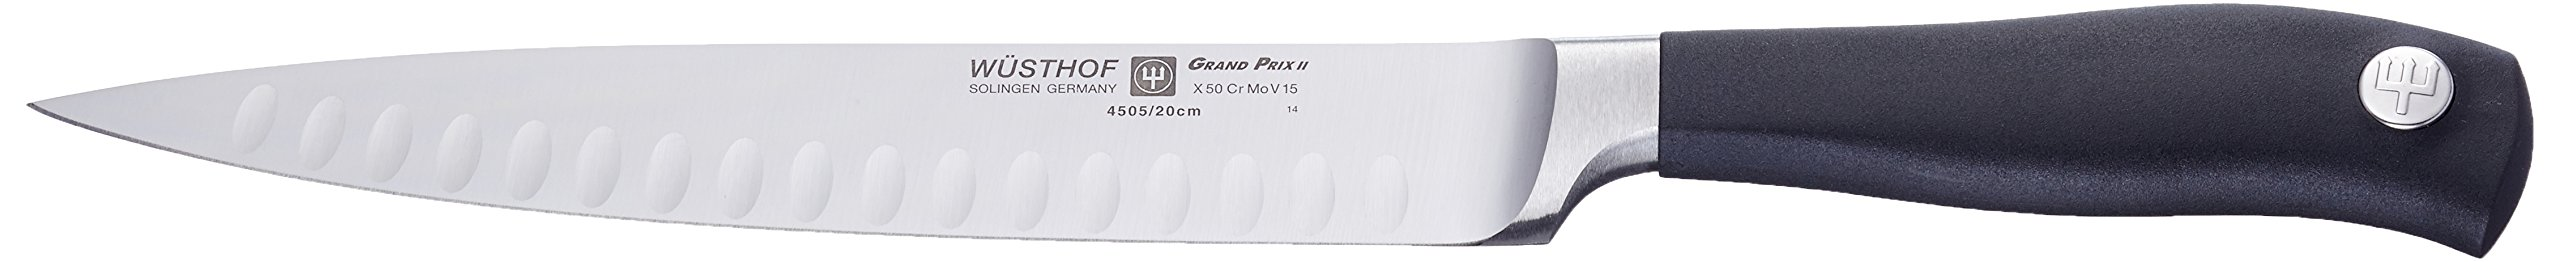 Wusthof Grand Prix II 8-Inch Hollow-Ground Carving Knife